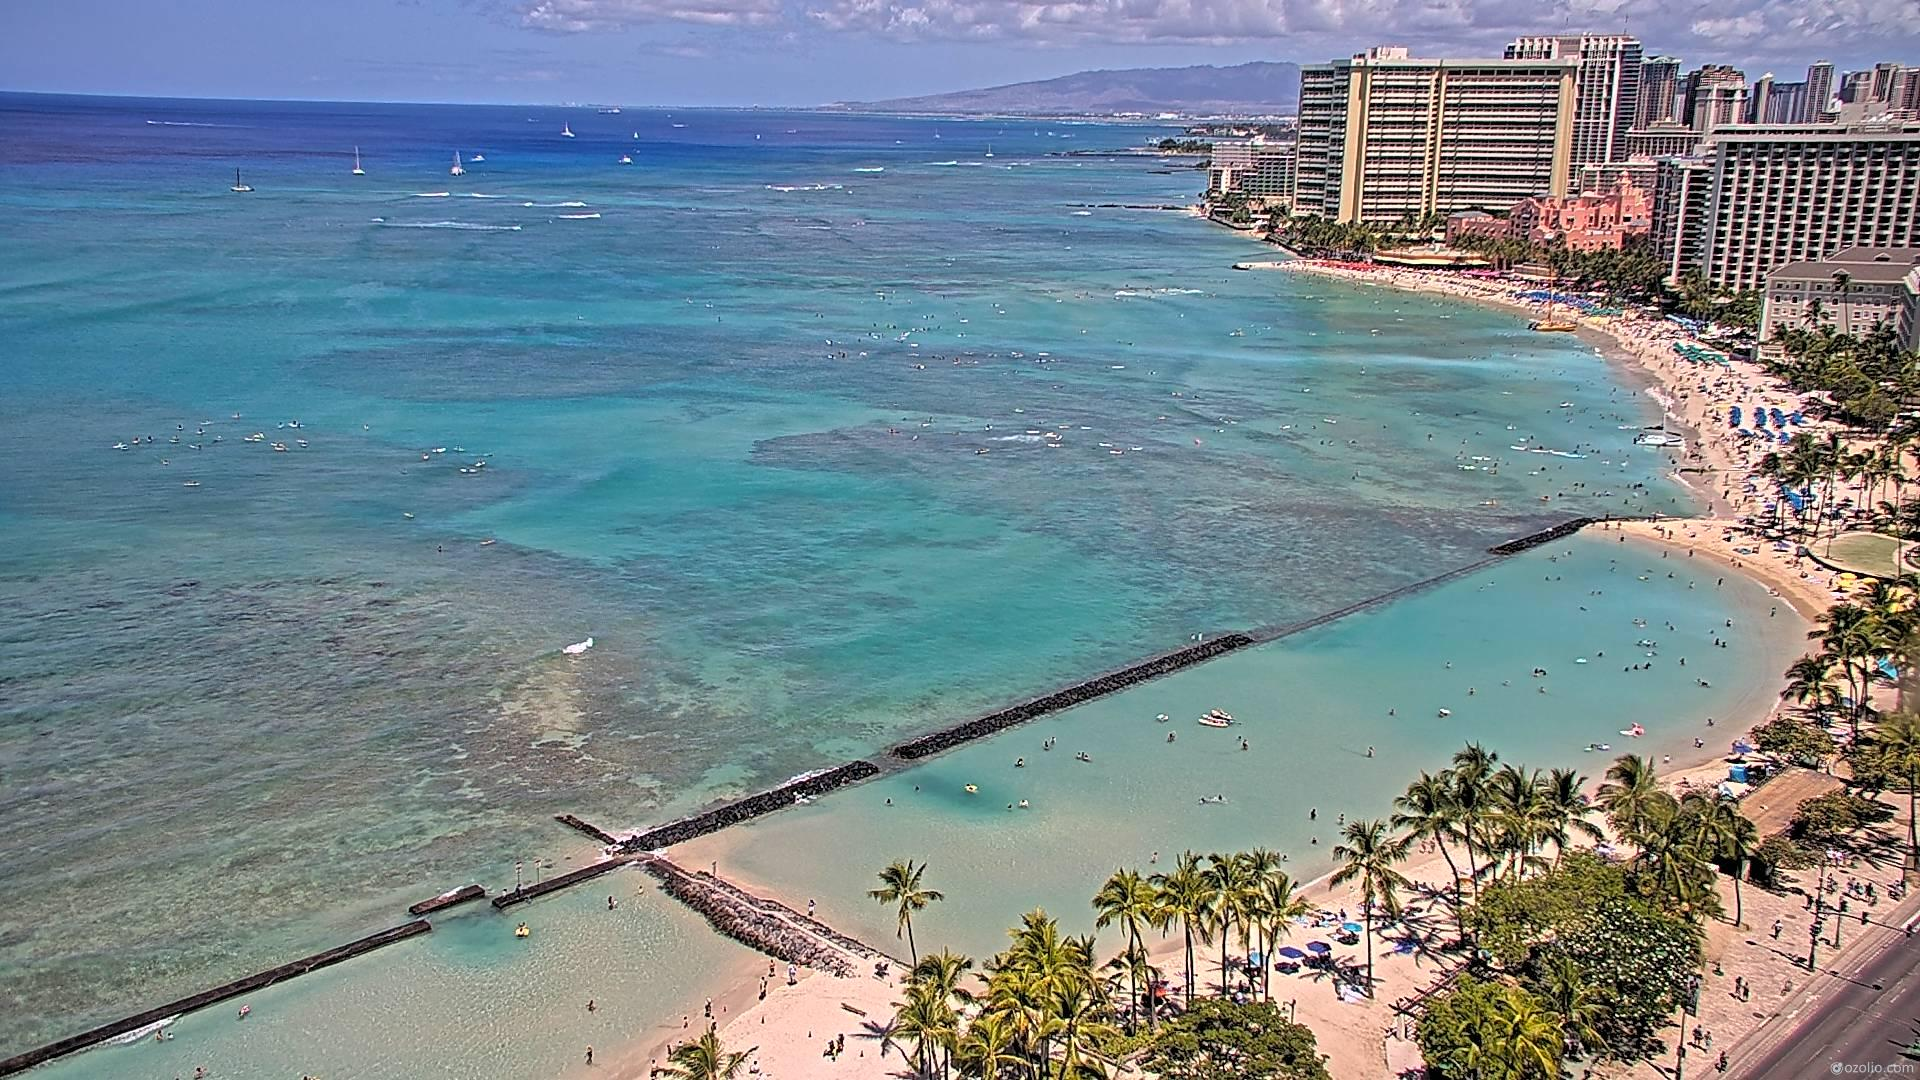 Waikiki Beach, Hawaii Fri. 11:16